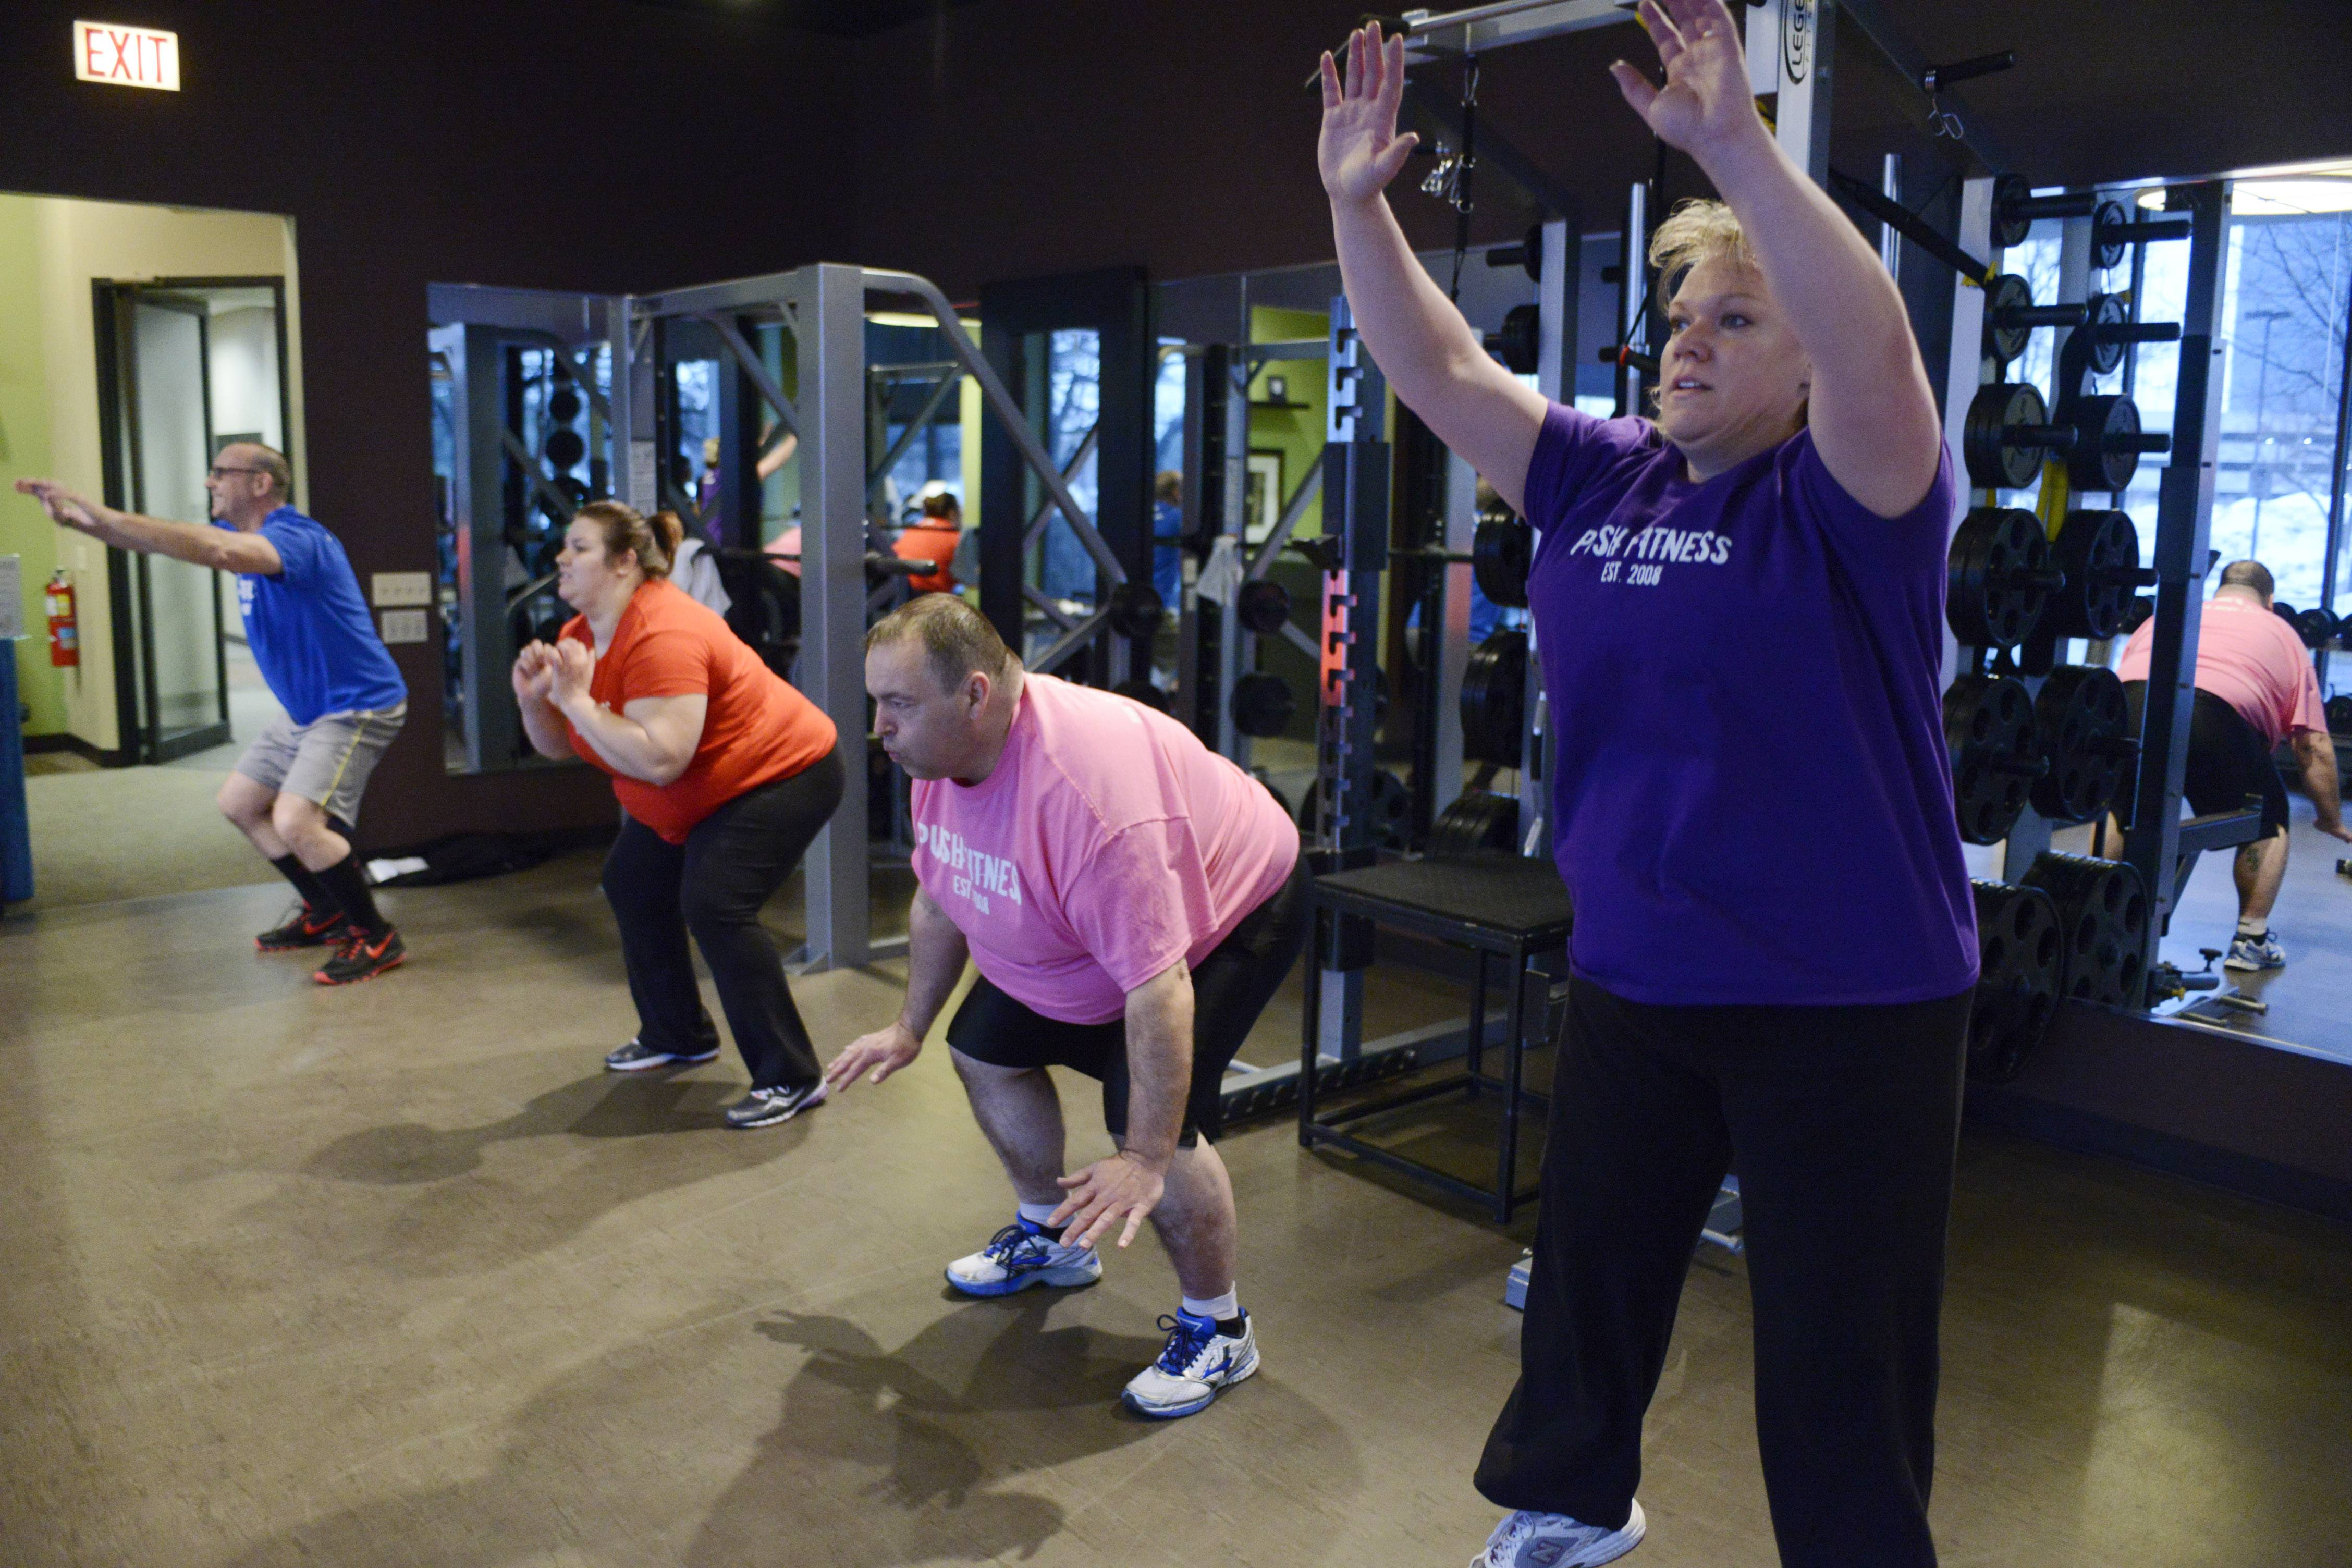 The Fittest Loser contestants meet at Push Fitness in Schaumburg every Saturday morning with boot camp instructor Brad Parotto. This week a variety of exercises were on the agenda including squat jumps.